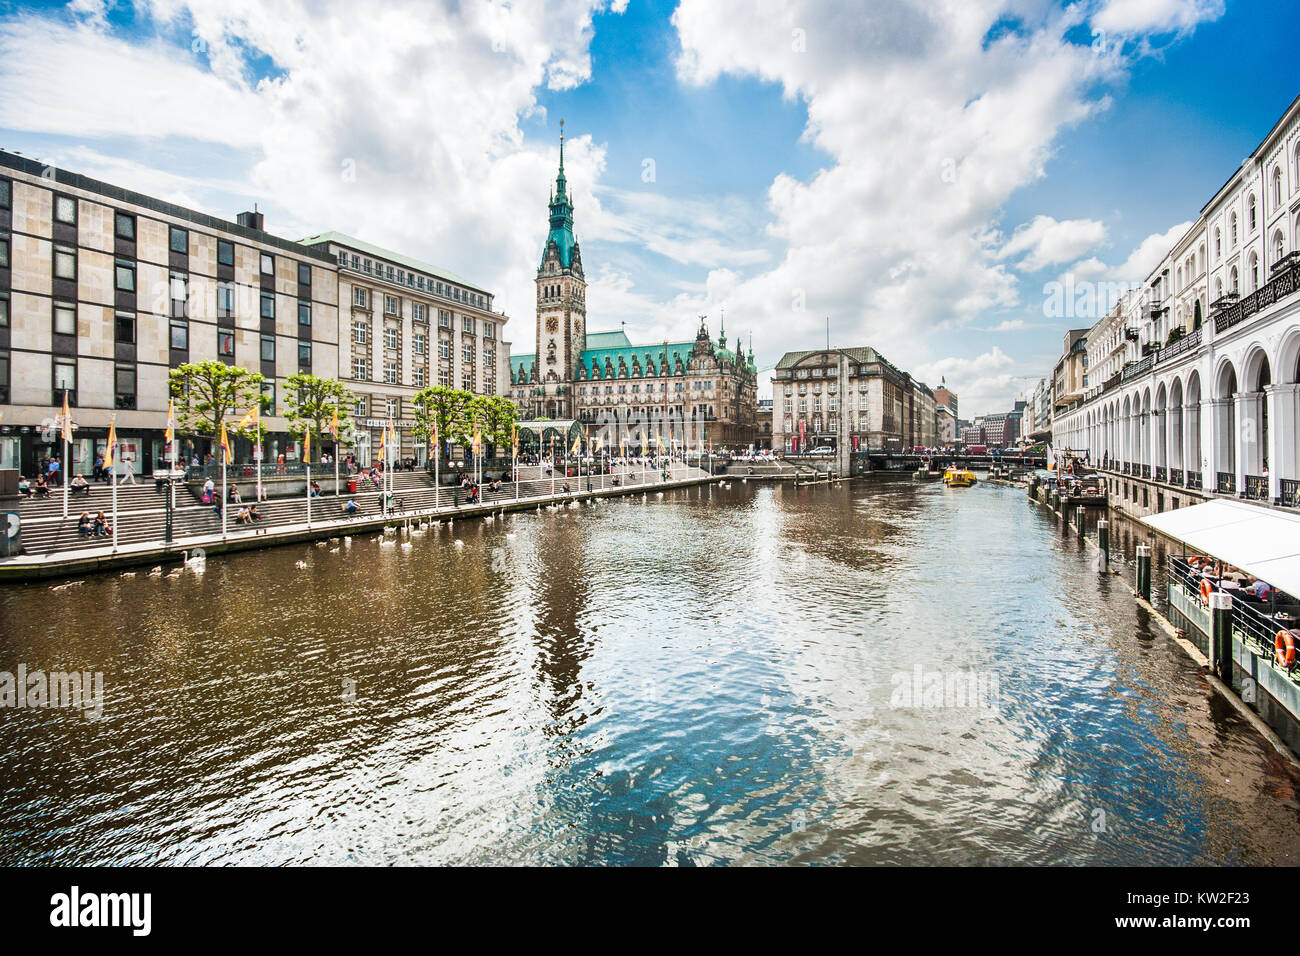 Beautiful view of Hamburg city center with town hall and Alster river, Germany - Stock Image